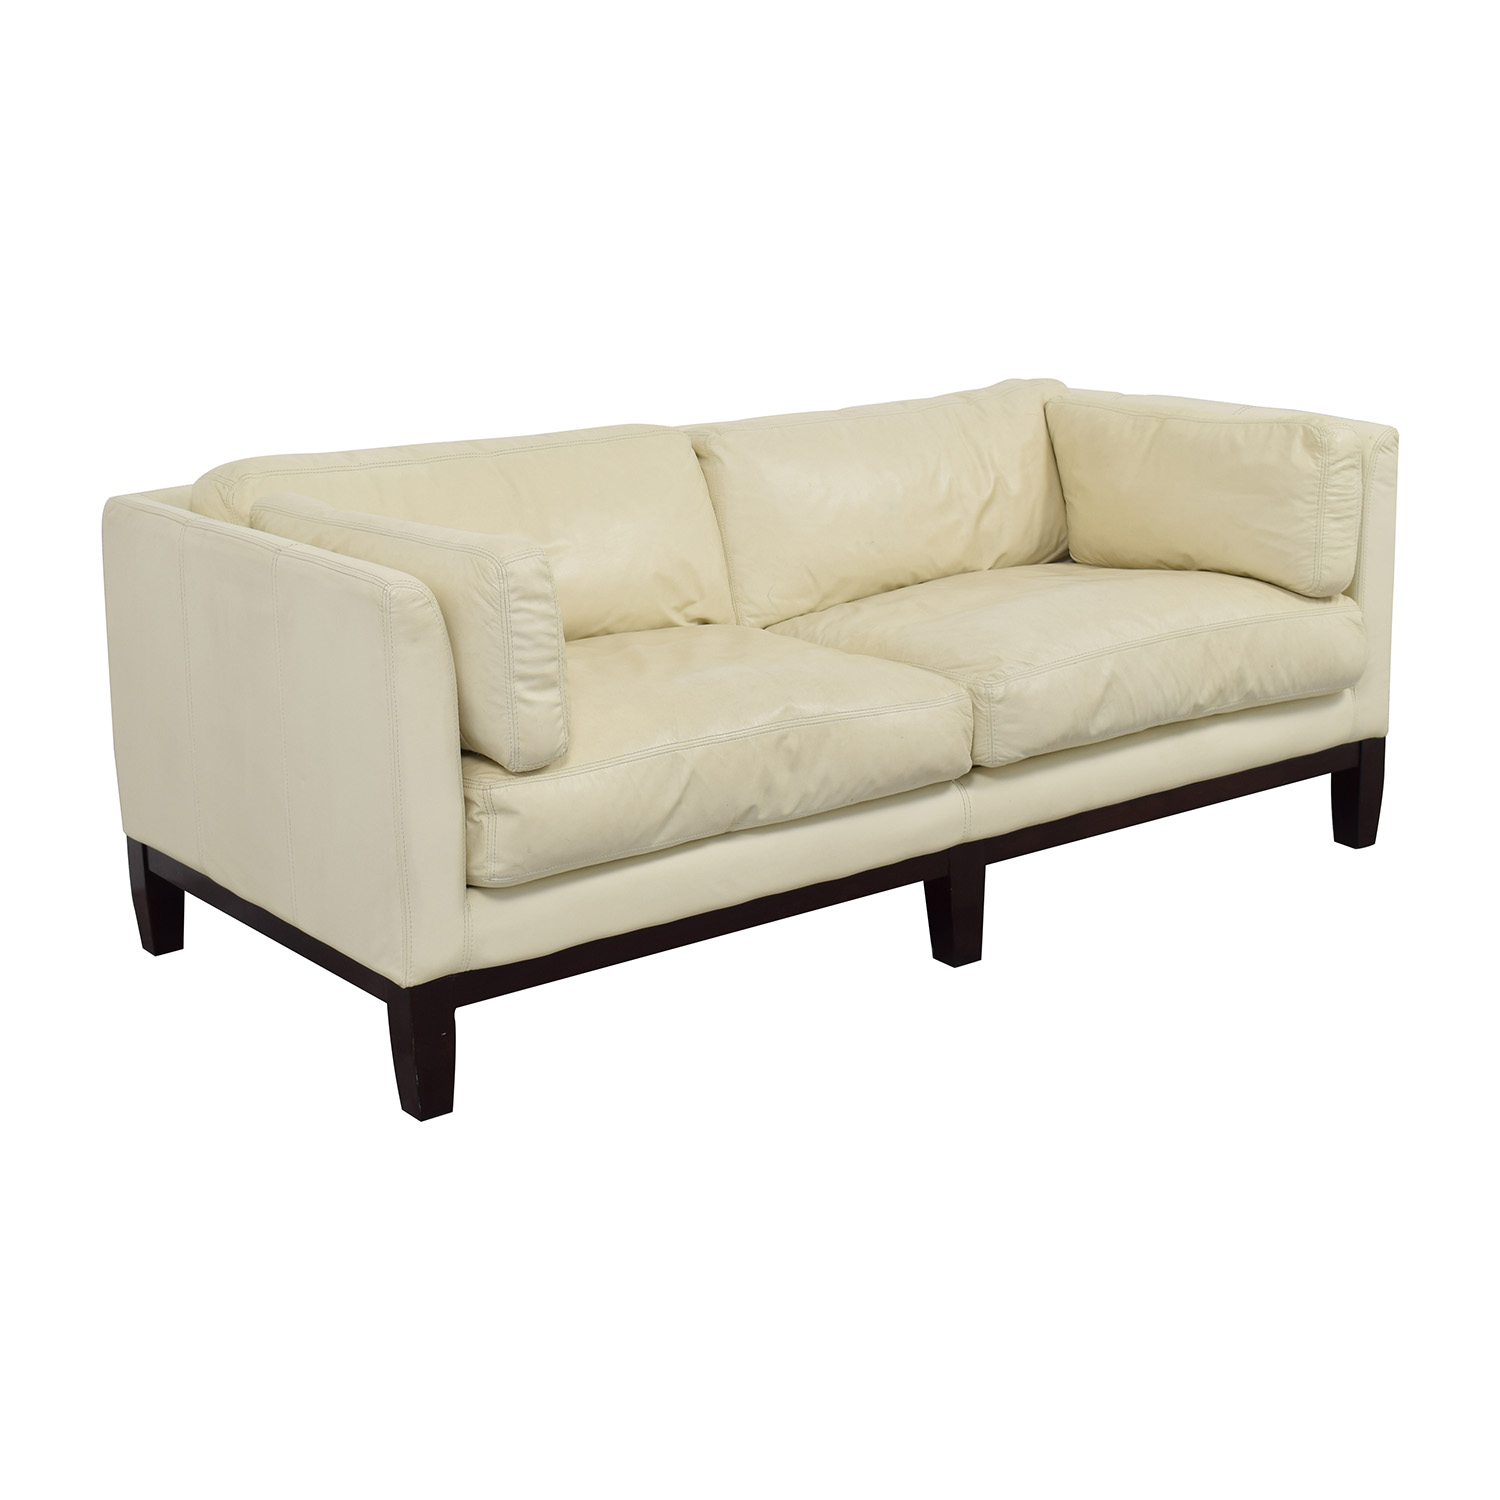 72 off decoro decoro off white leather sofa sofas for Second hand sofas